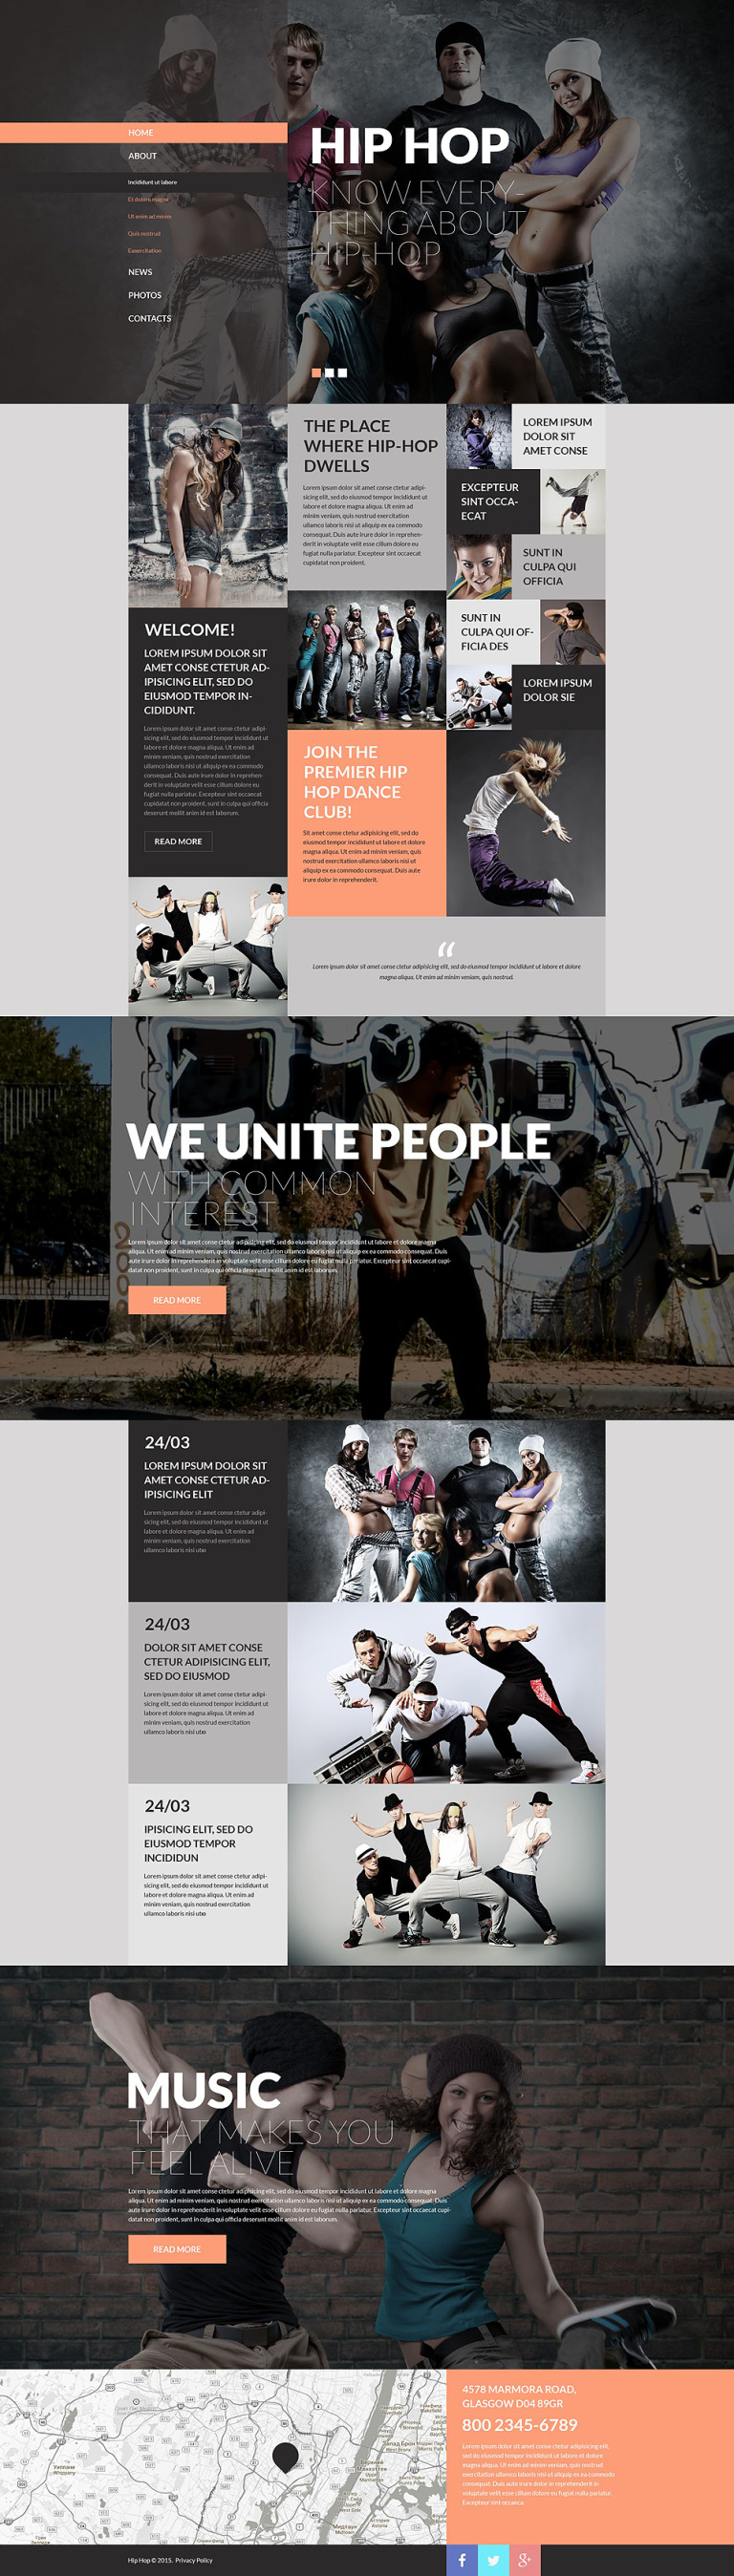 Street Dance Website Template New Screenshots BIG